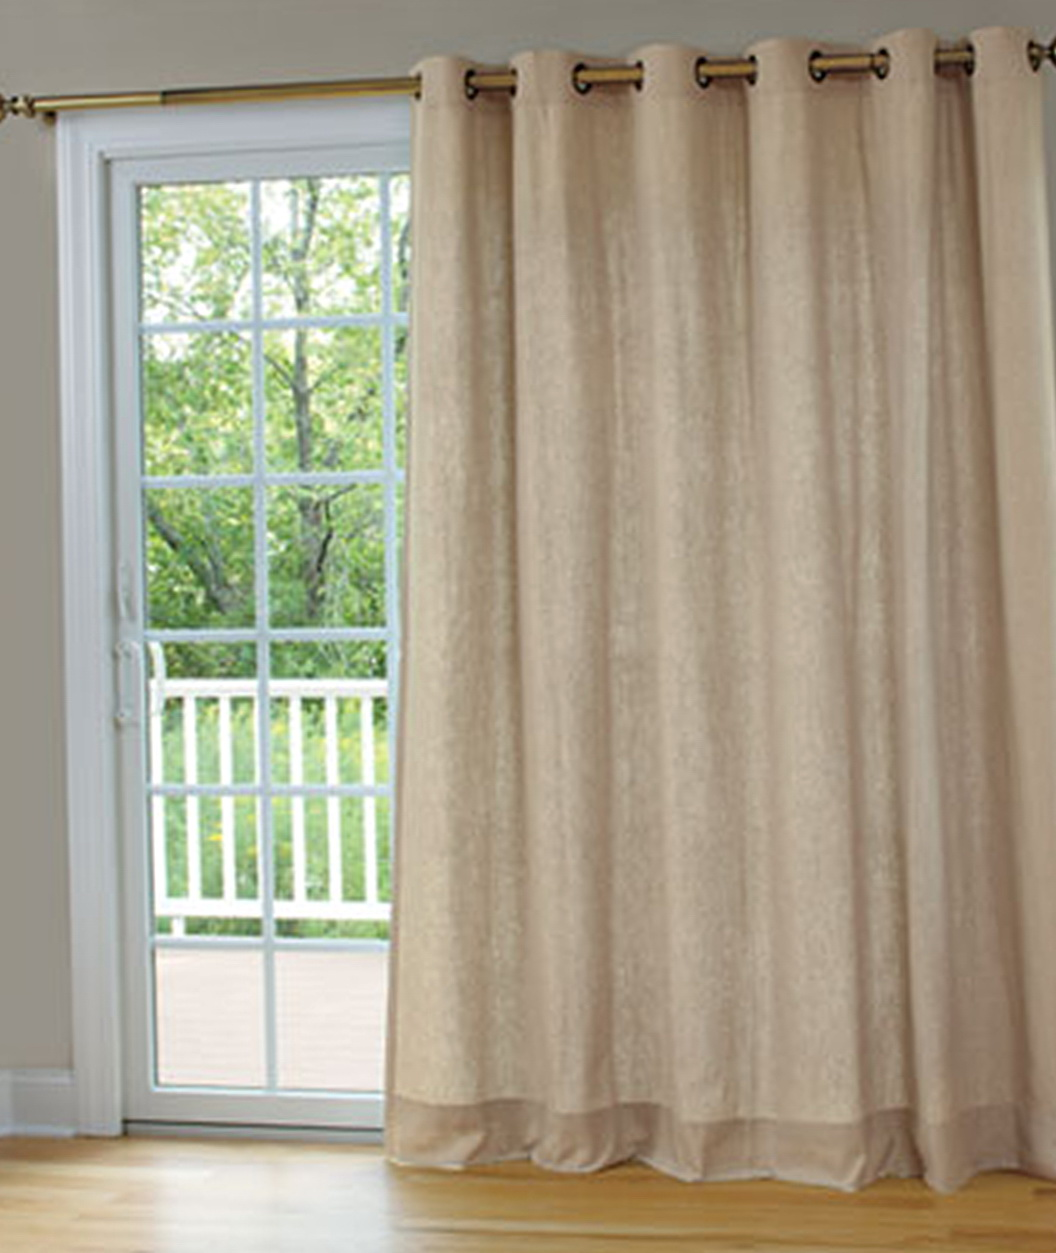 Curtains for patio doors in kitchen home design ideas - Curtain for kitchen door ...